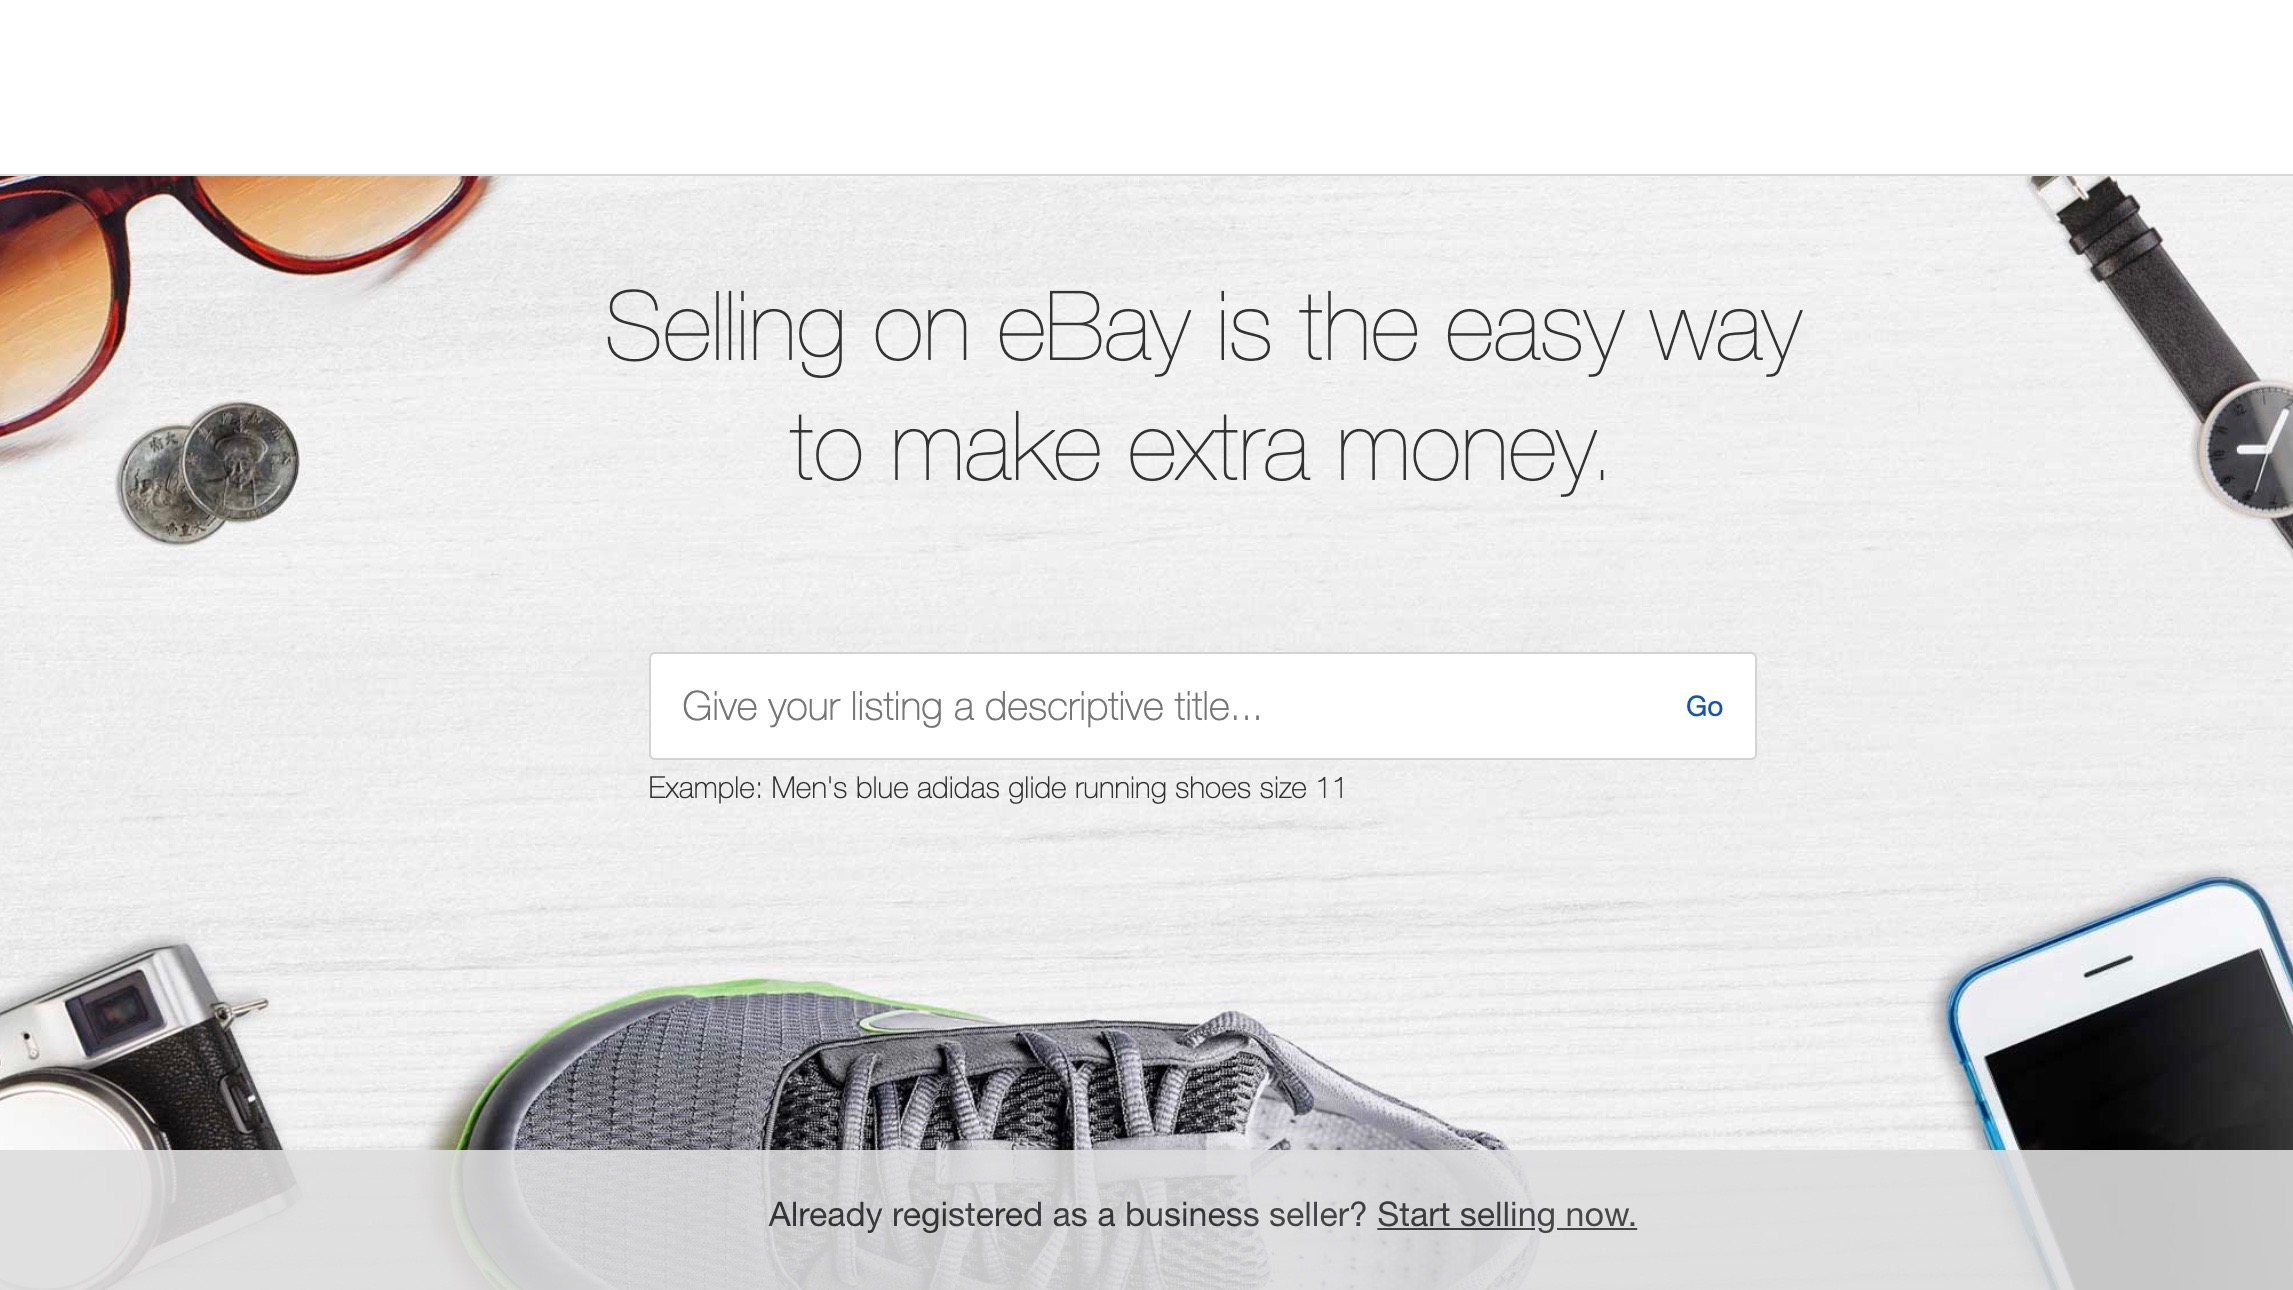 Here S How Easy It Is To Sell Stuff On Ebay Australia Trabilo Story Tips Review